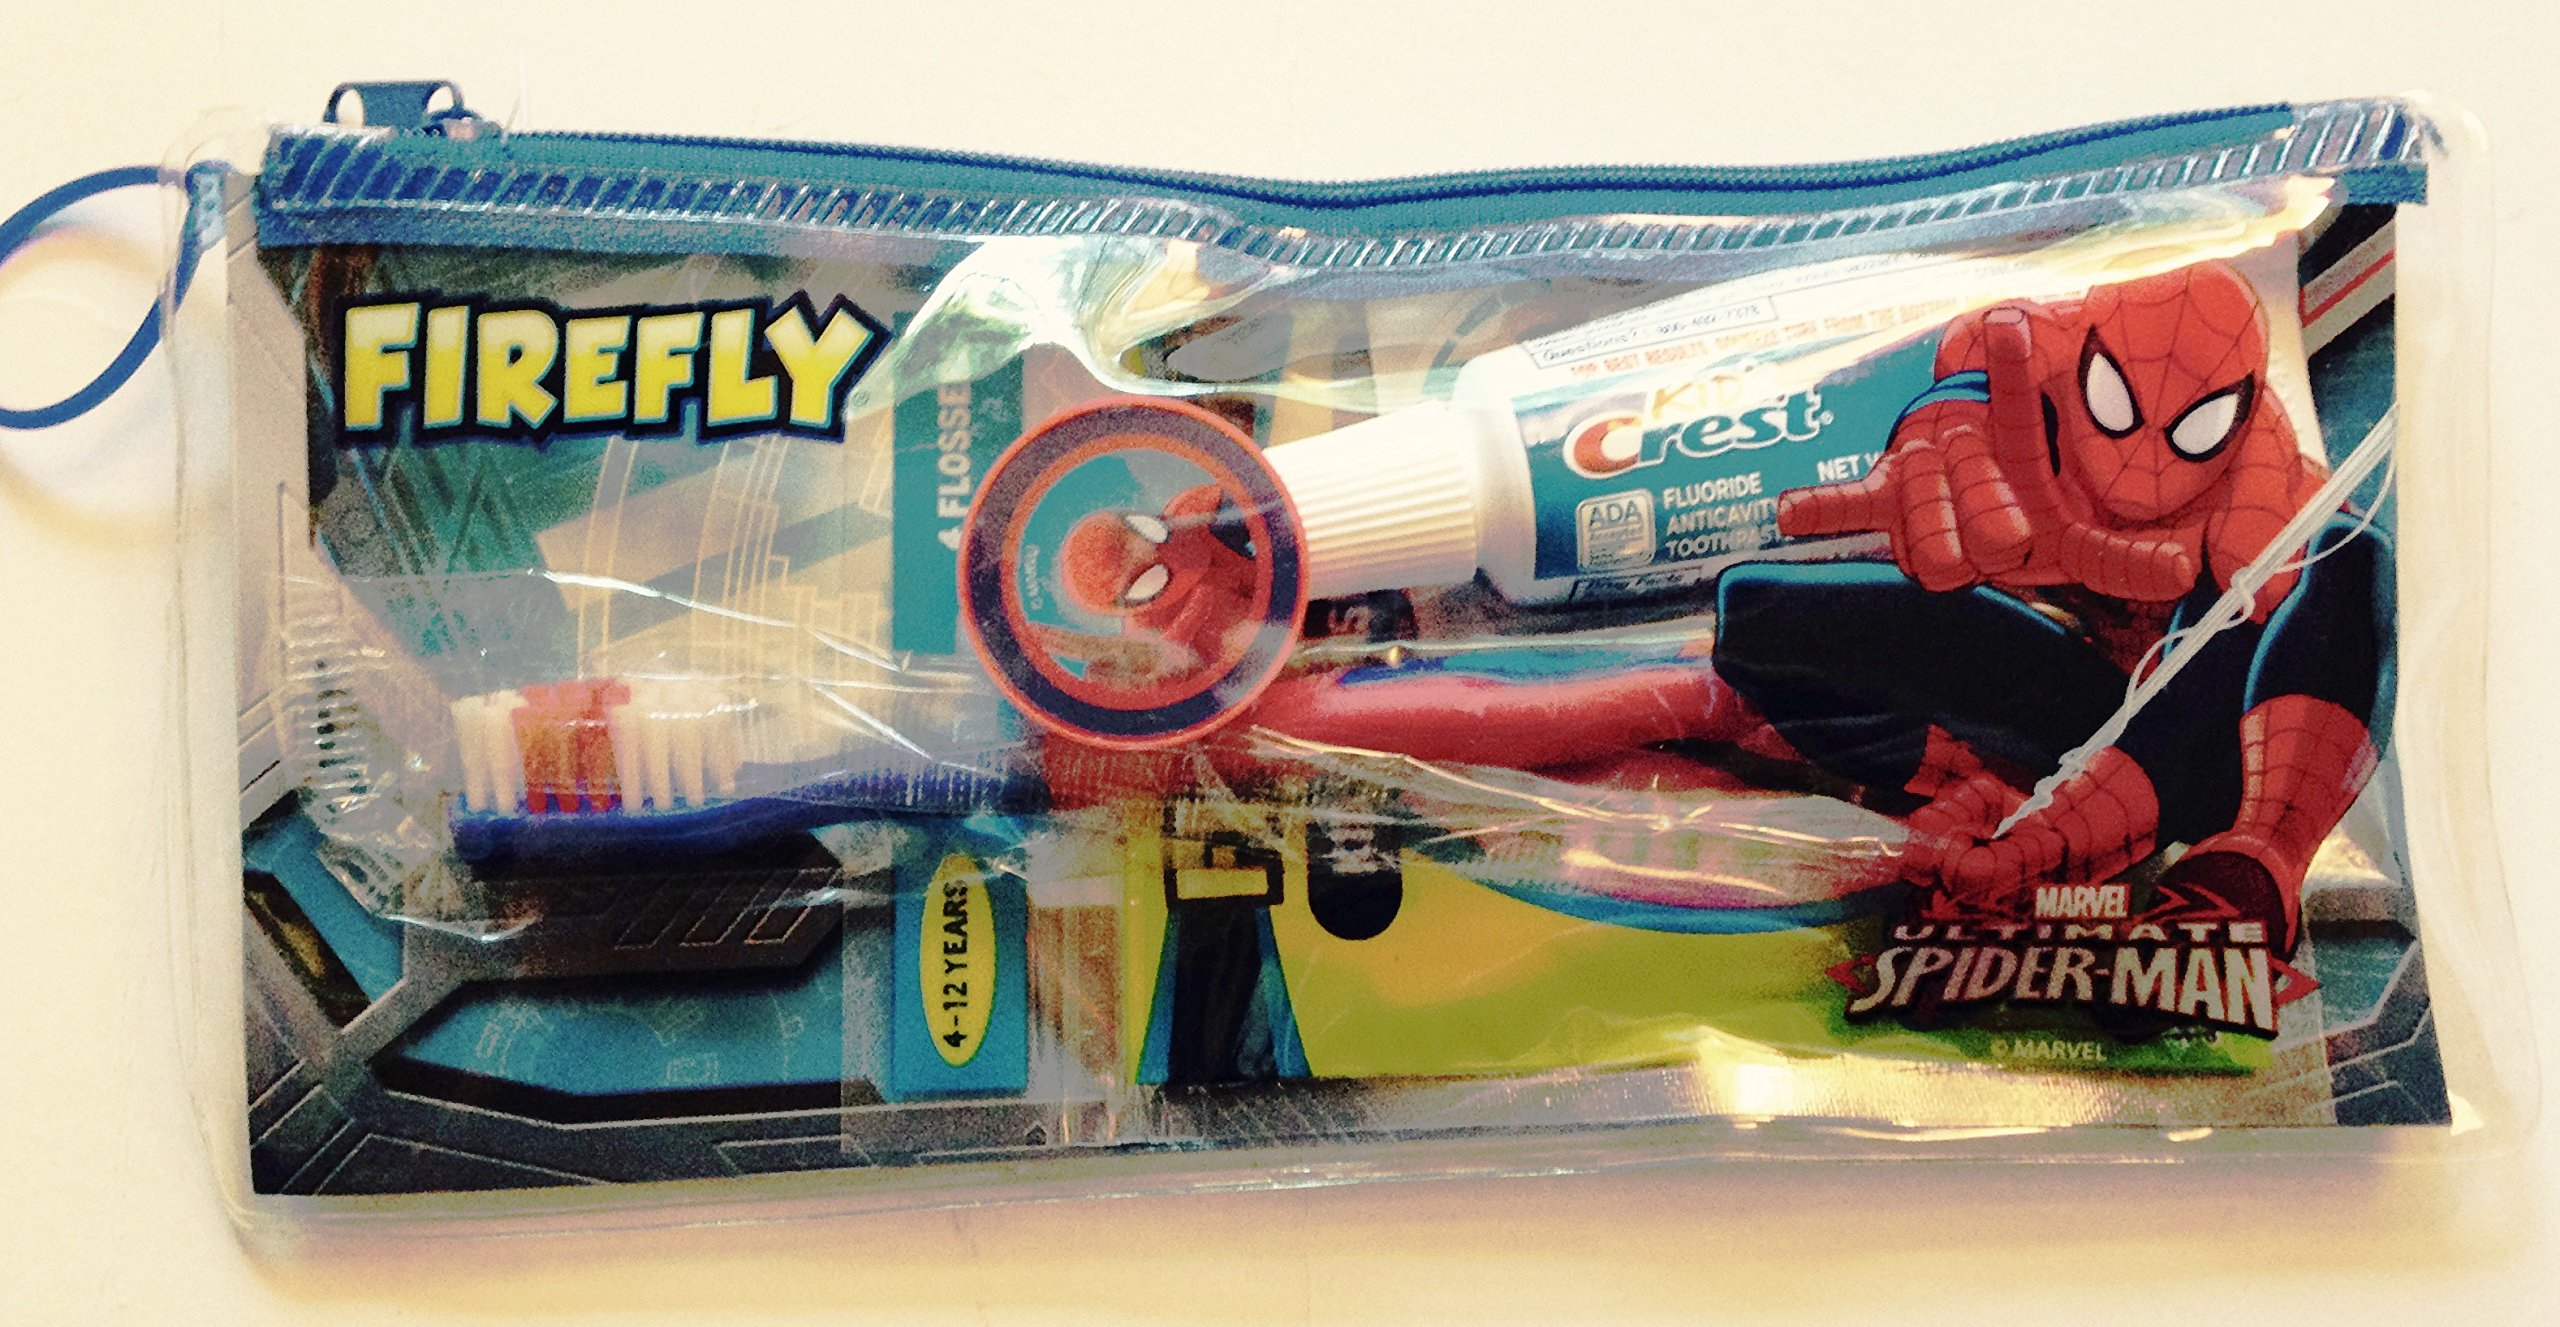 Firefly Dental Travel Kit for Kids (Ultimate Spider-Man)